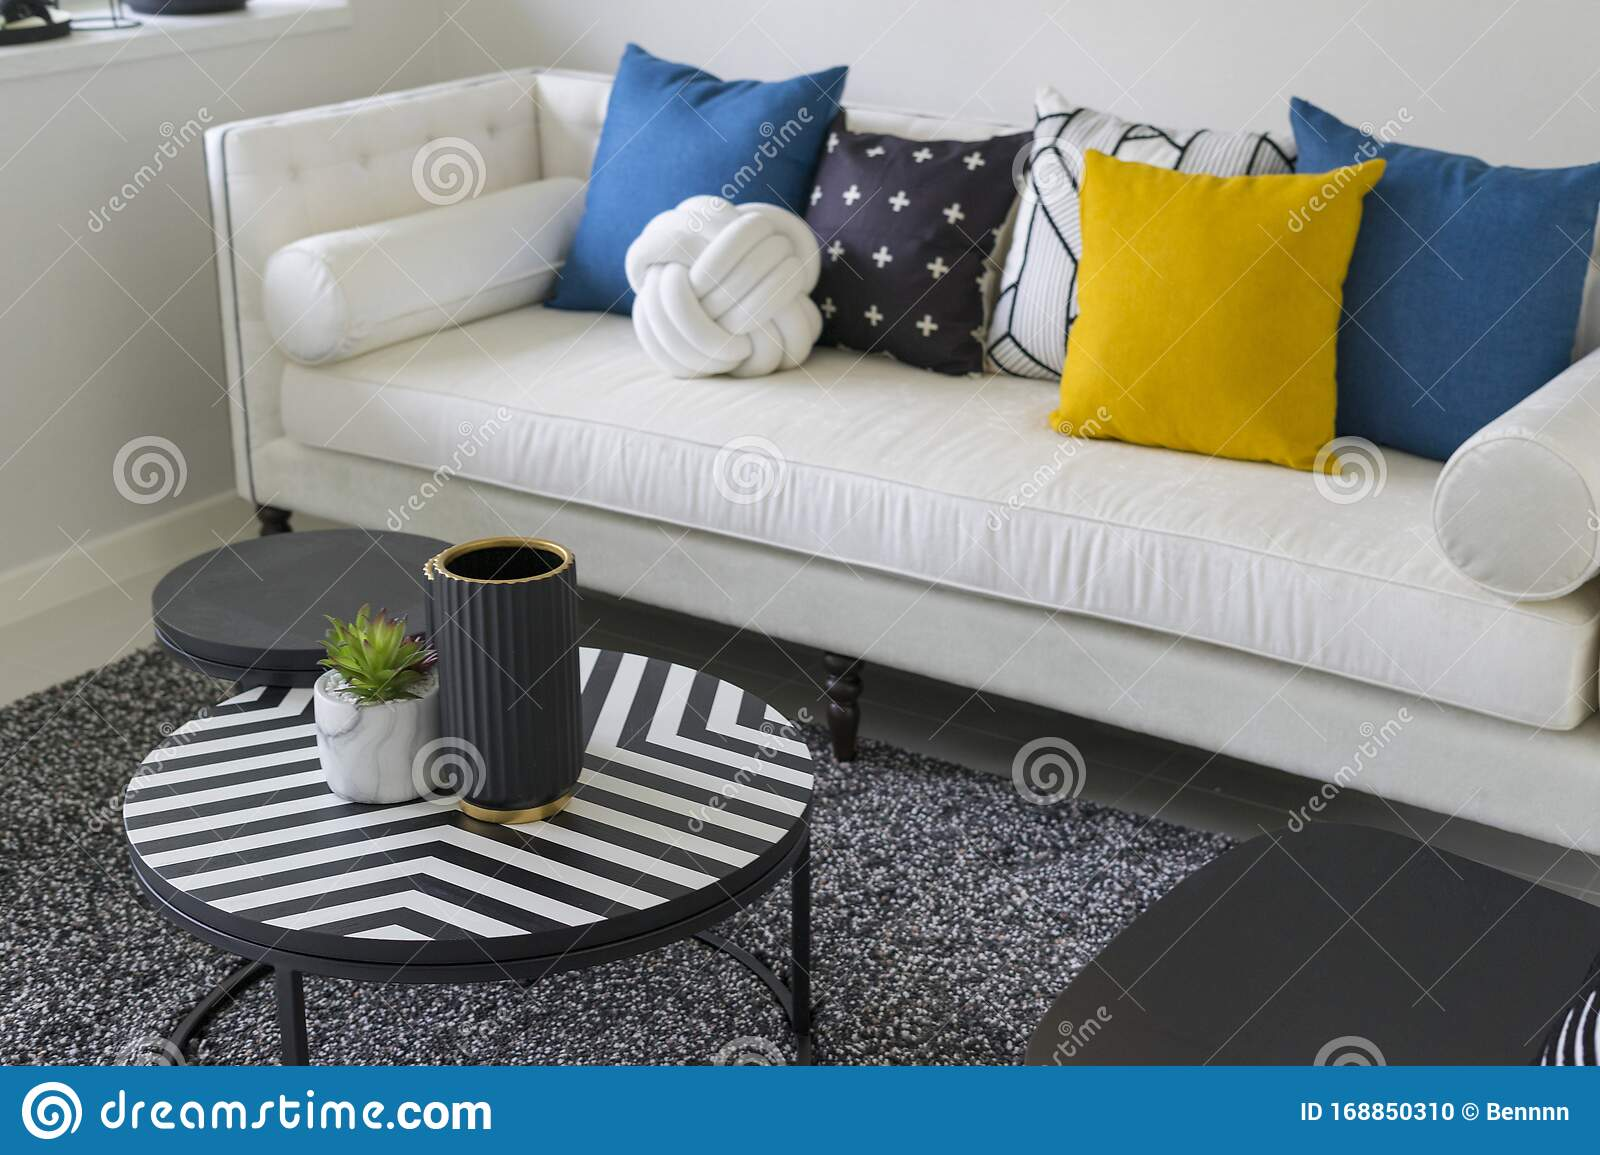 Modern Living Room With Blue White And Yellow Pillow On Sofa Stock Photo Image Of Design Home 168850310